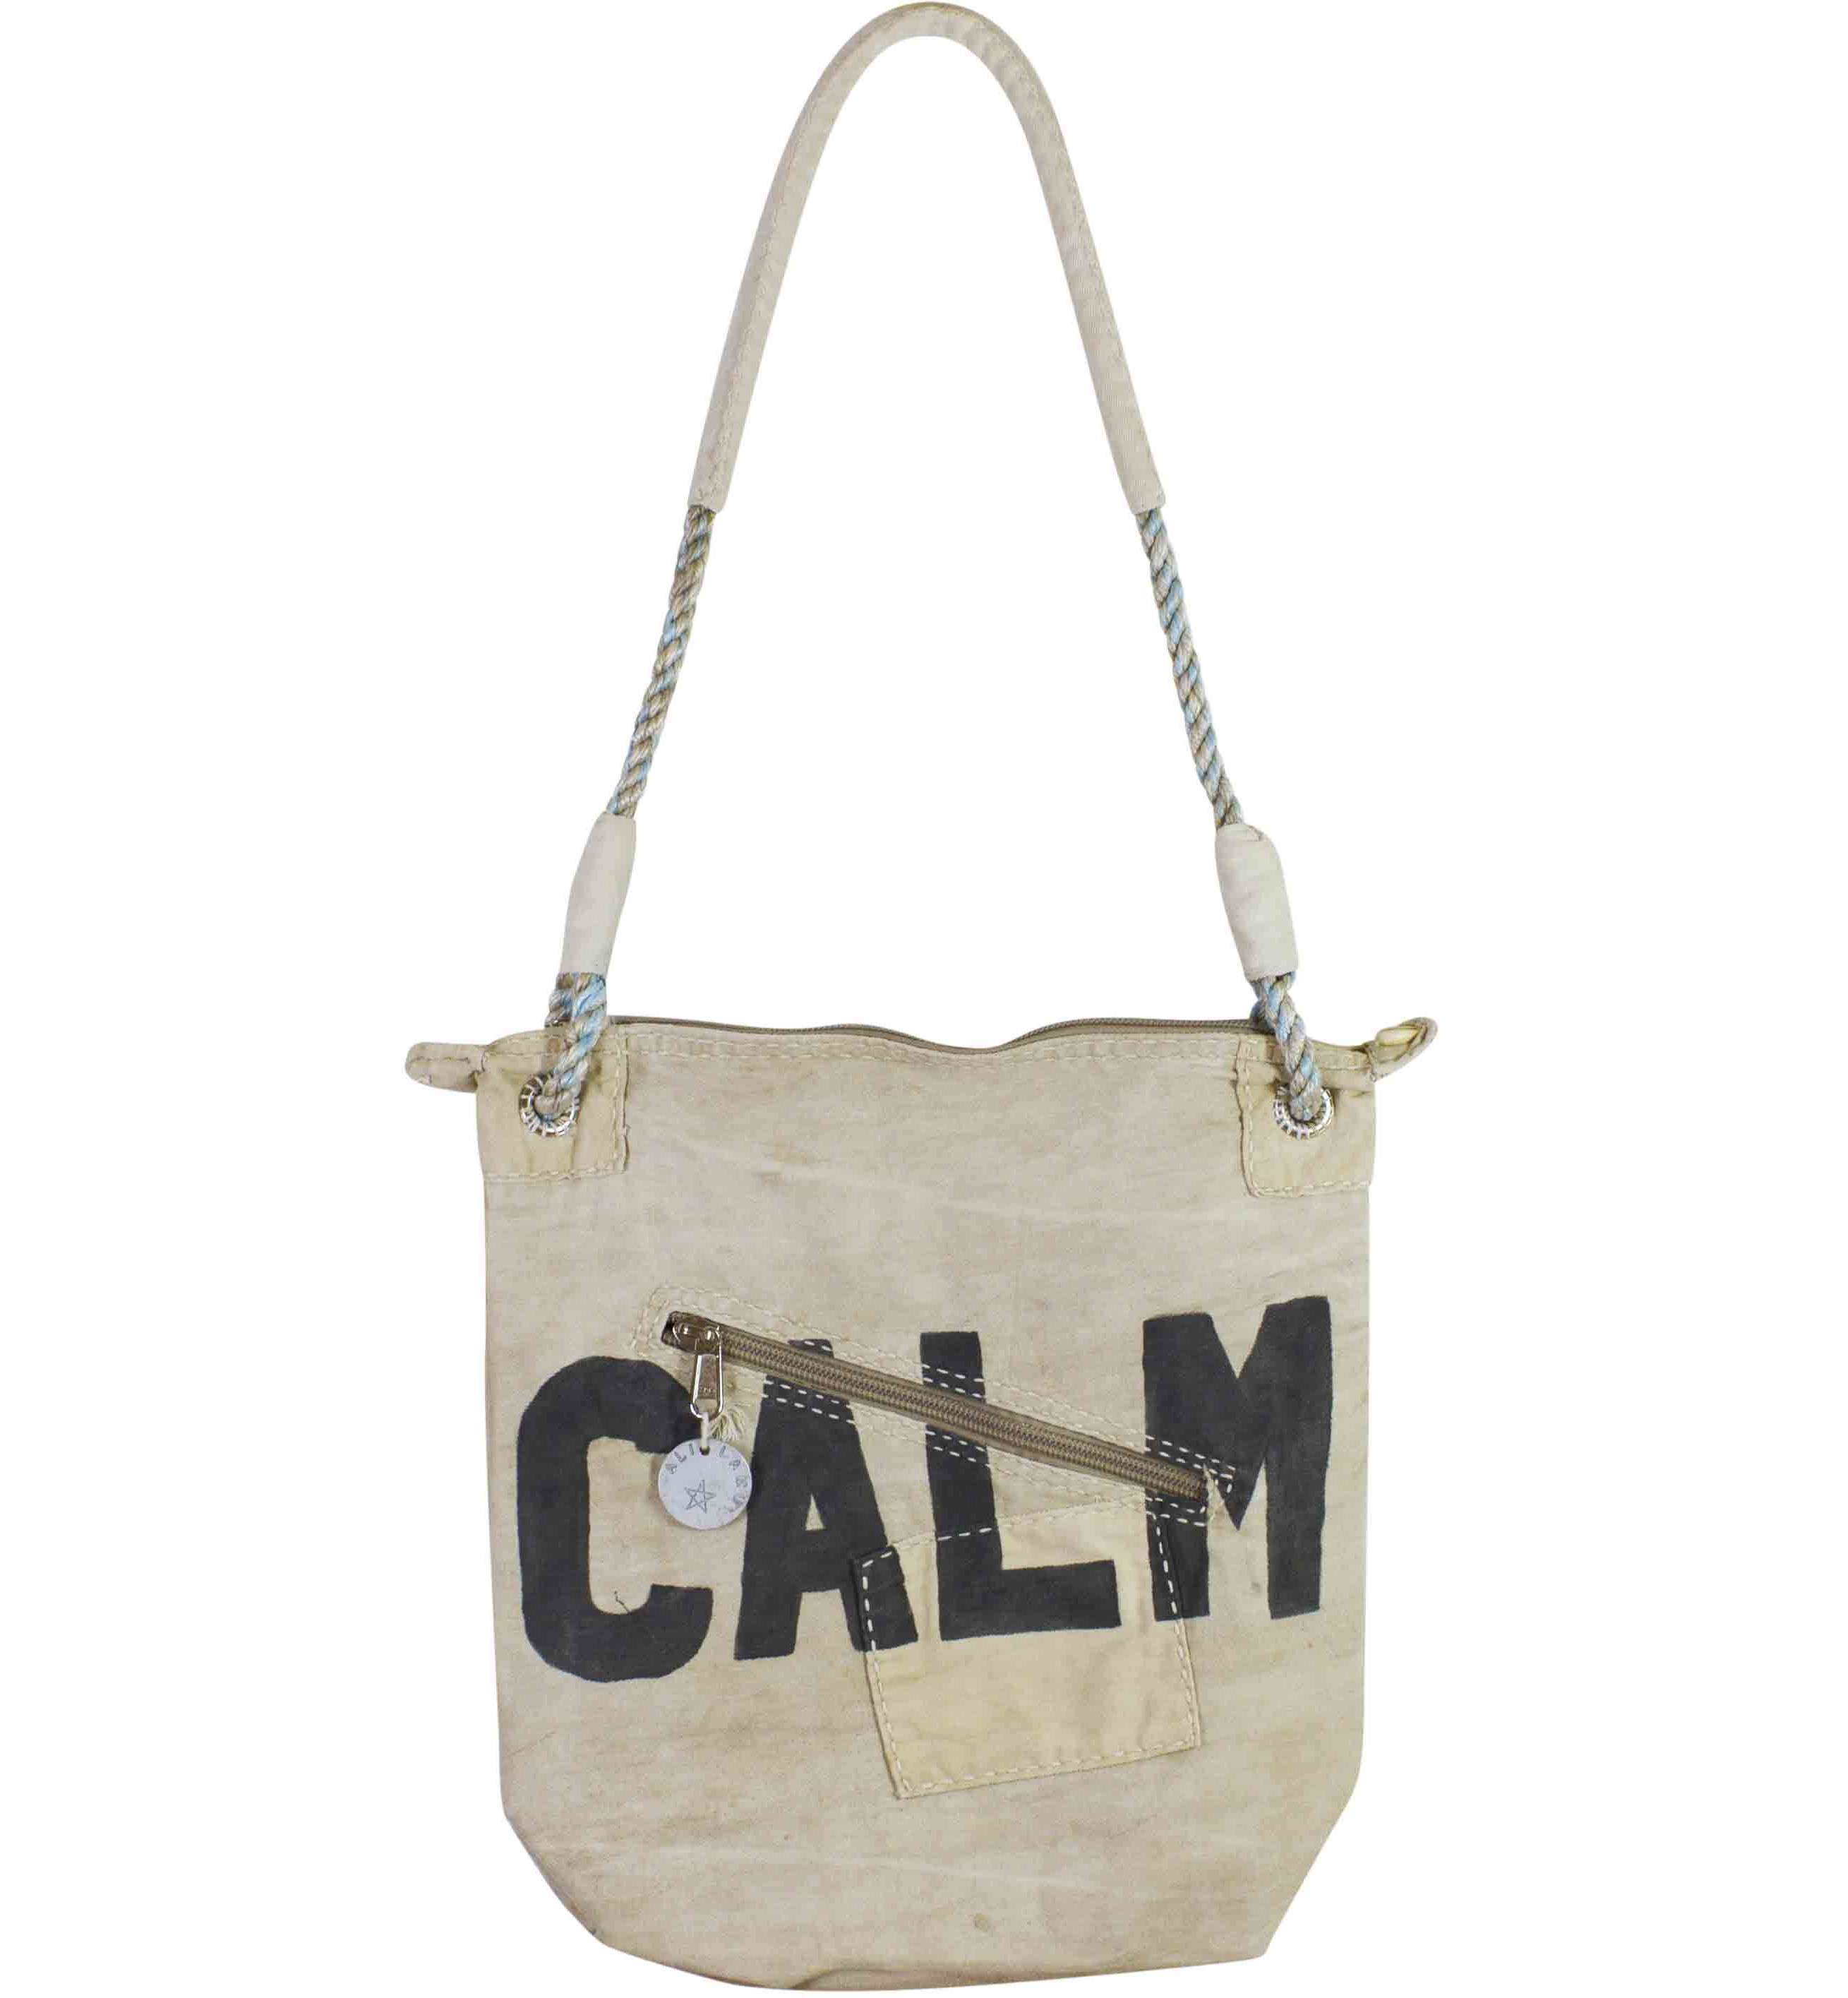 SKULDER TASKE. VINTAGE. NEUTRAL CANVAS. TEKST CALM